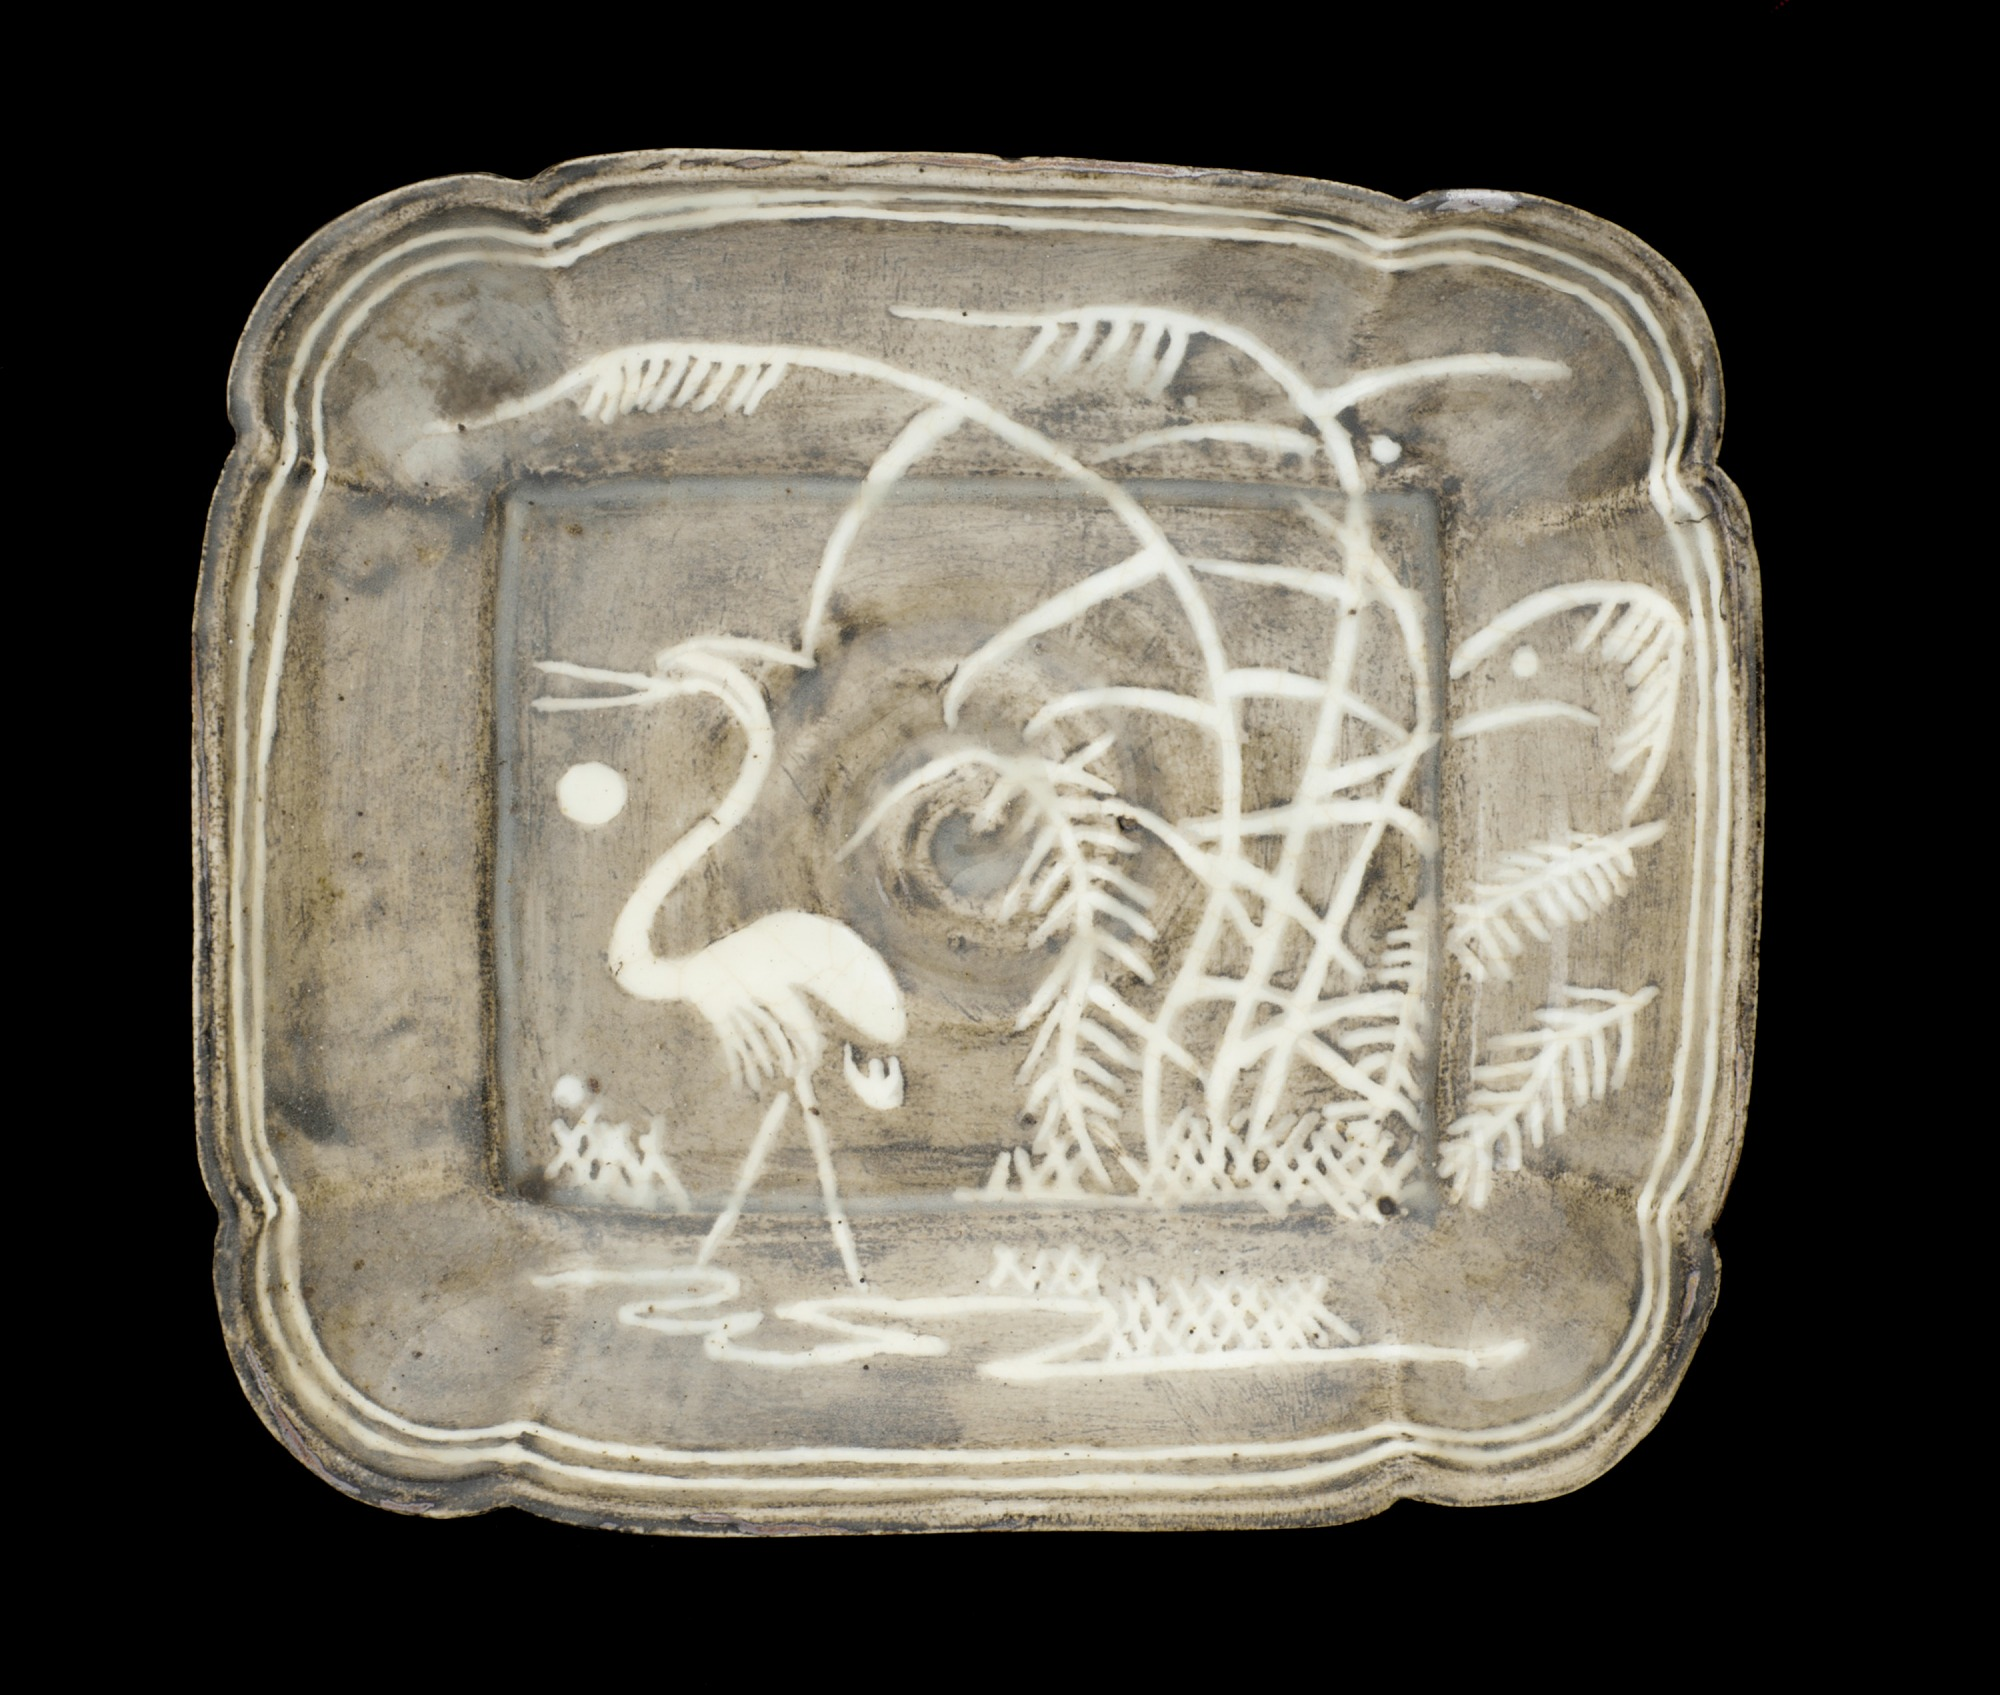 Seto ware rectangular dish in Gray Shino style